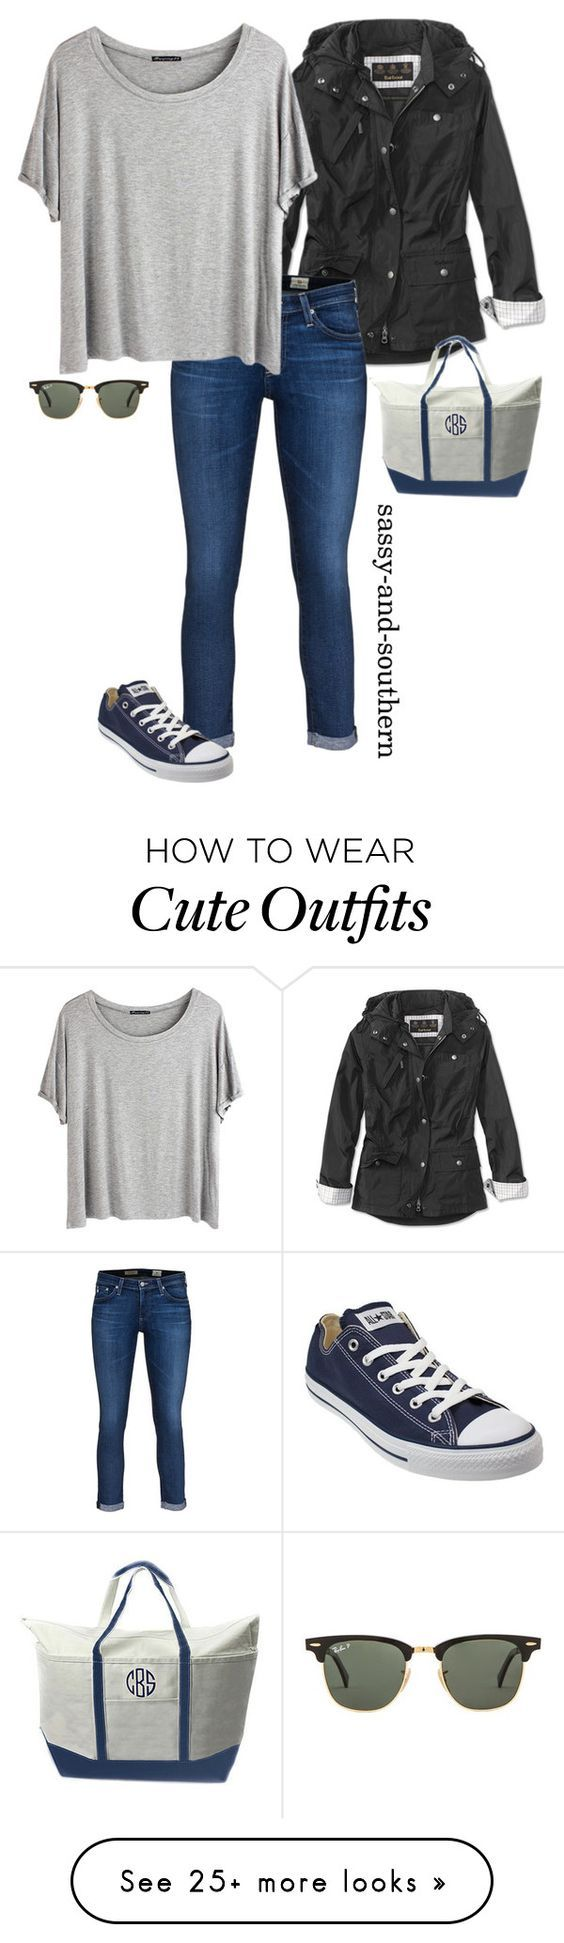 cute fall outfit by sassy-and-southern on Polyvore featuring Barbour, AG Adriano Goldschmied, Chicnova Fashion, Ray-Ban, CB Station, Converse, converse, rayban and sassysouthernfall: